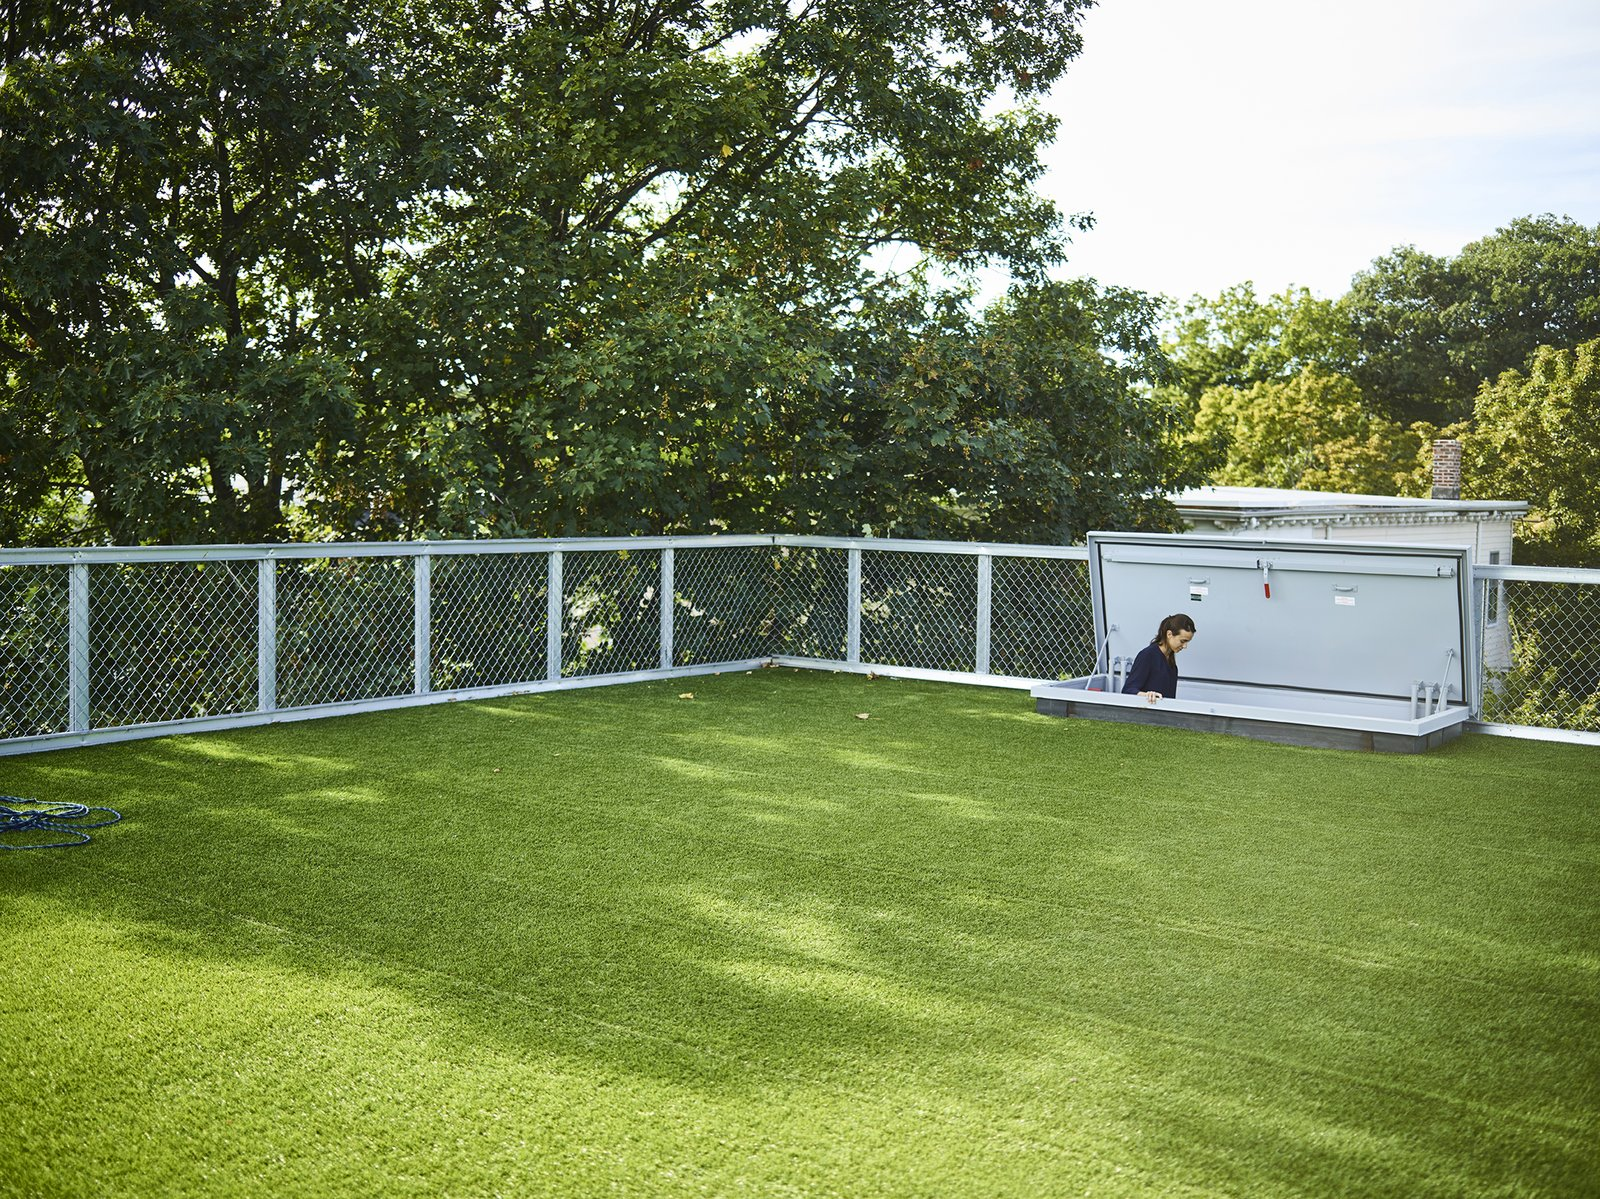 Tagged: Outdoor, Rooftop, Grass, Metal Patio, Porch, Deck, Metal Fences, Wall, and Wire Fences, Wall.  Photo 1 of 11 in Across the Ocean